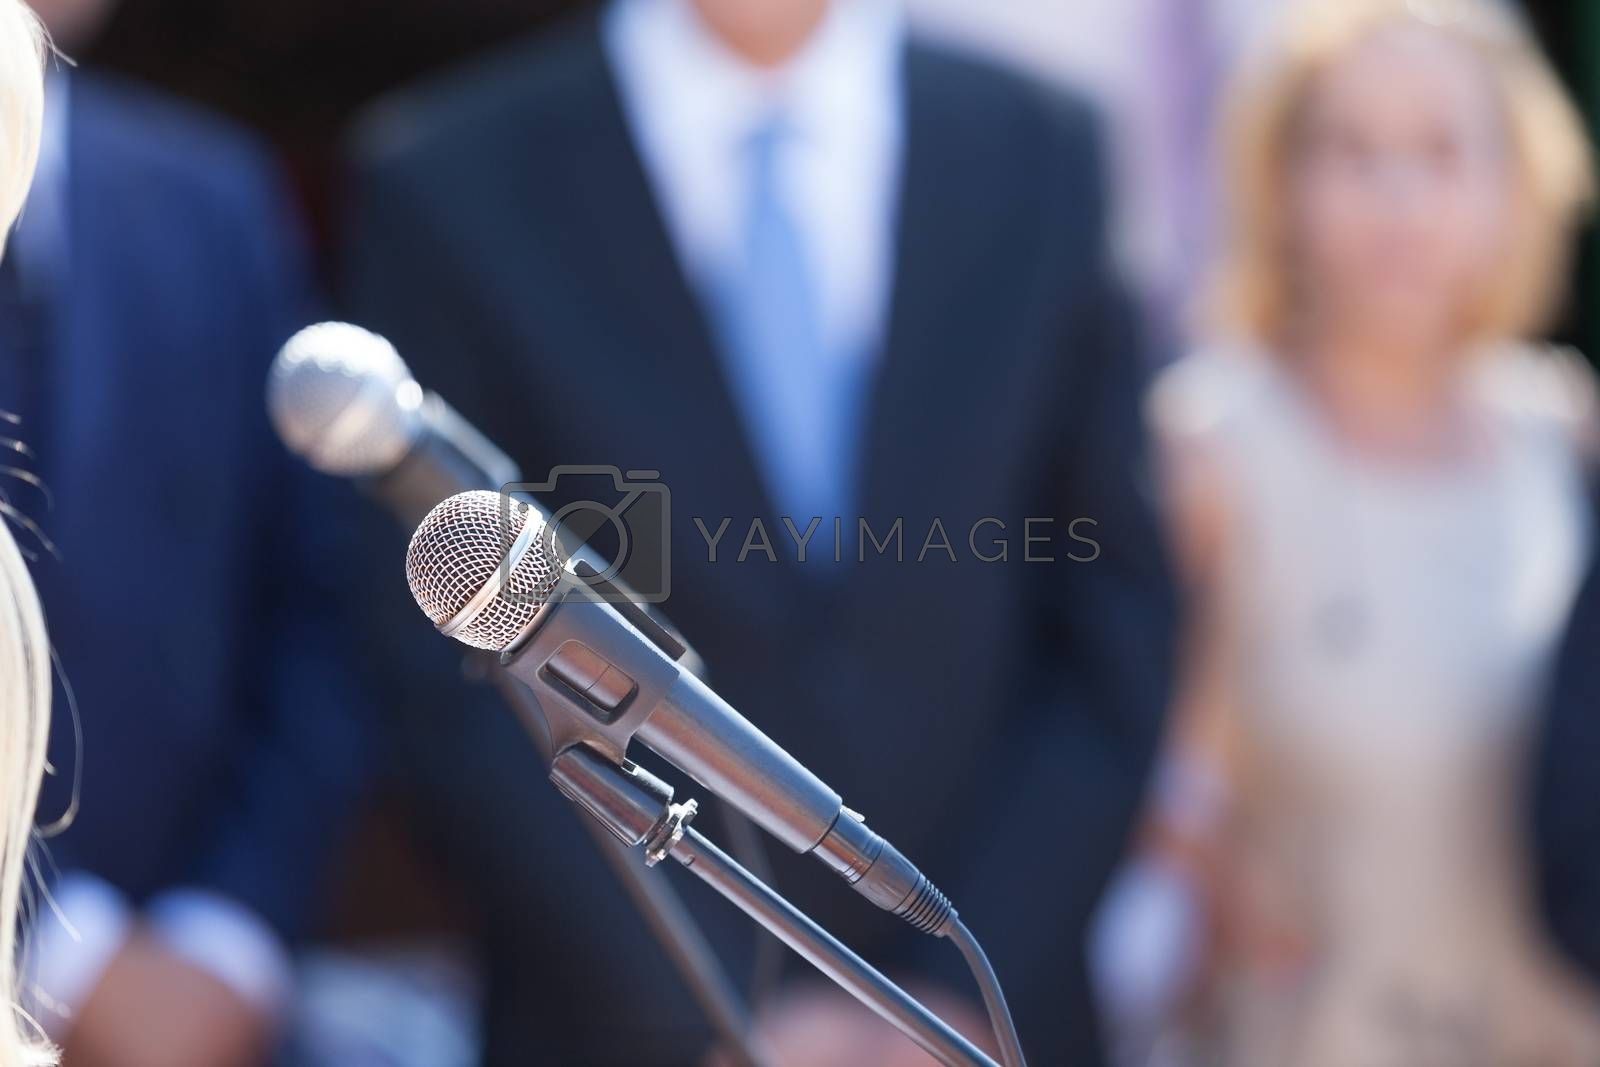 Press conference. Microphone in focus against blurred group of people.